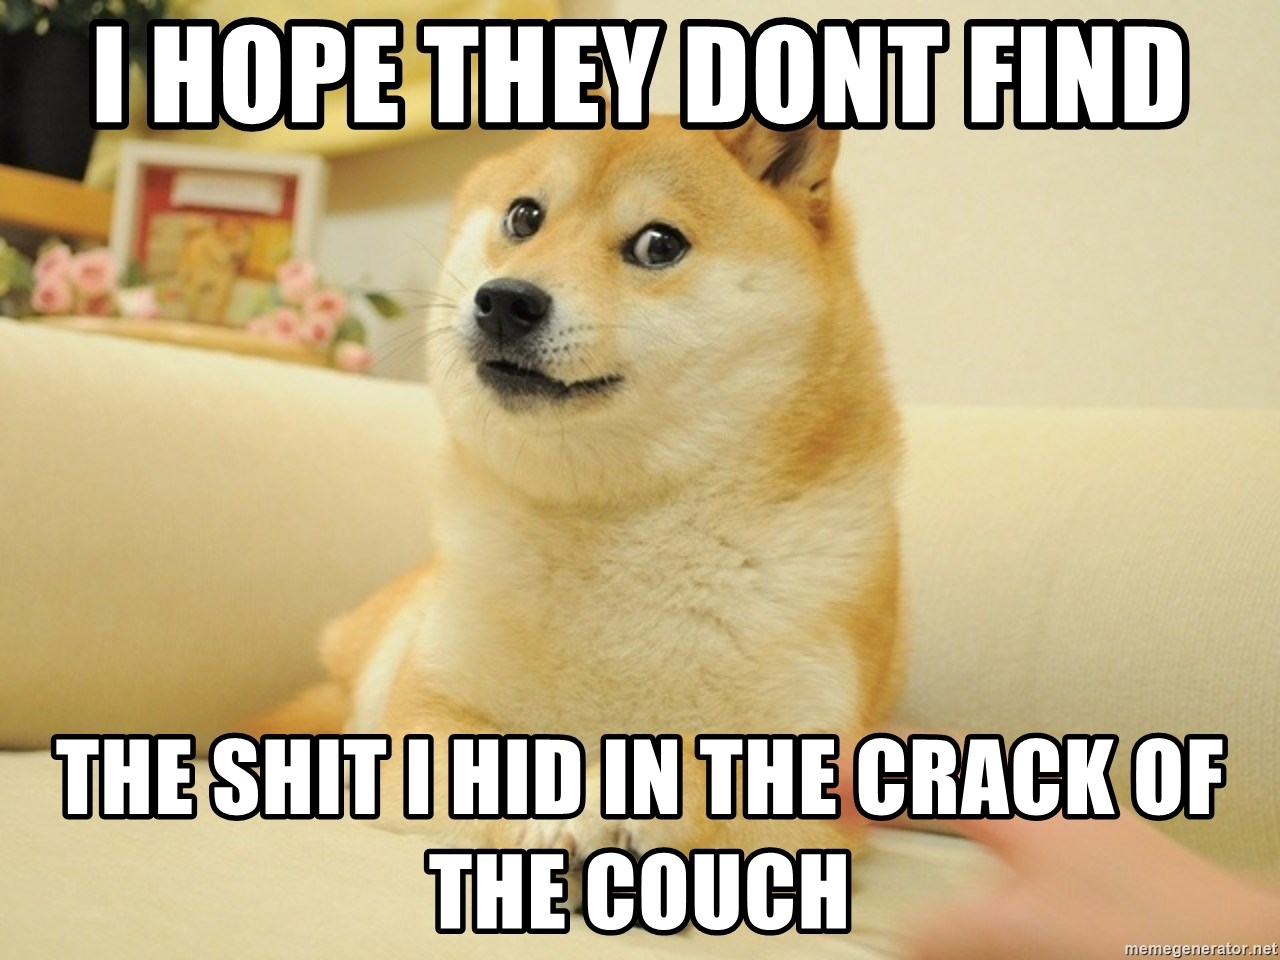 so doge - i hope they dont find the shit i hid in the crack of the couch